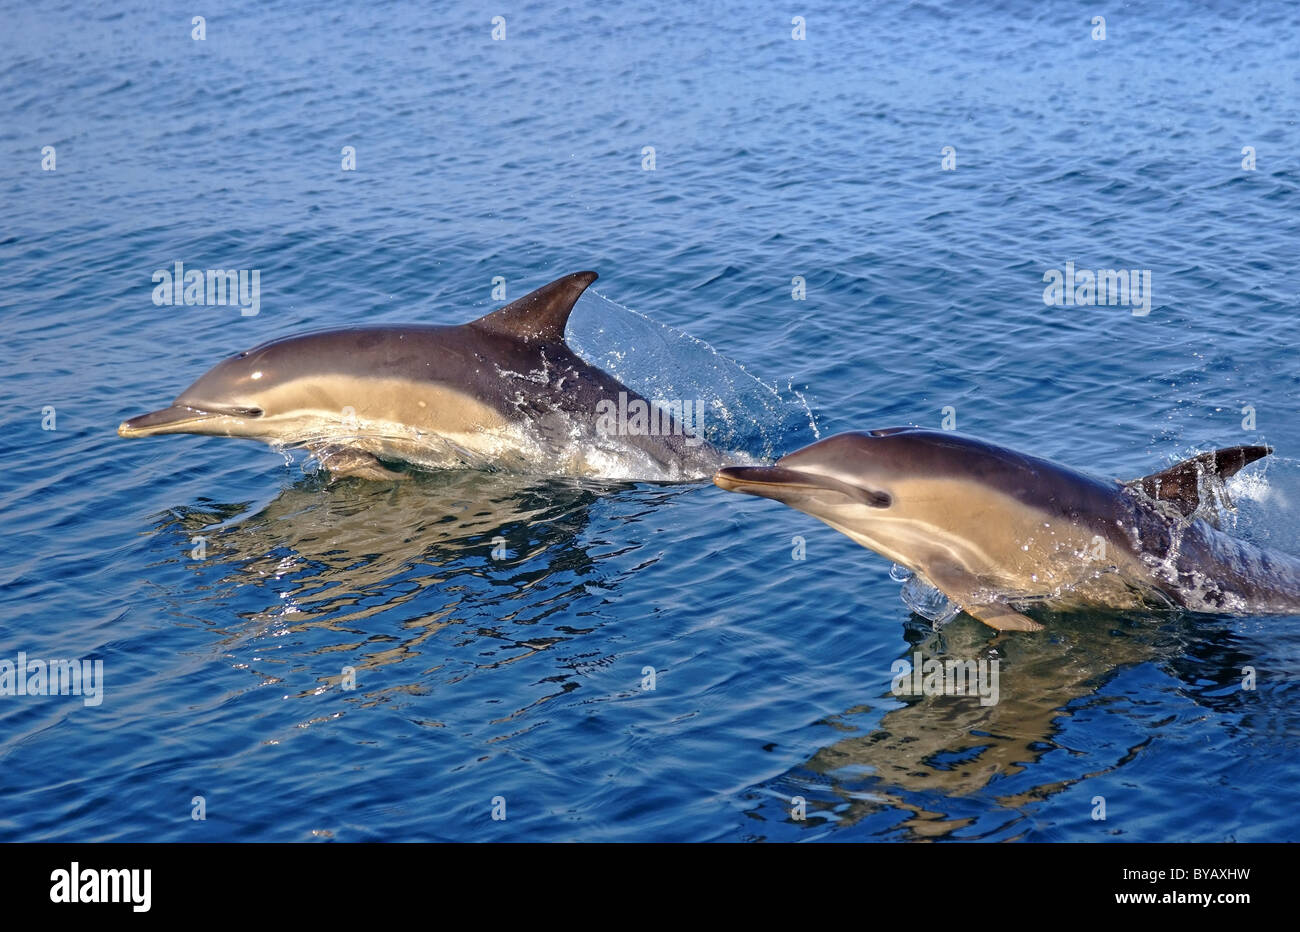 Common Dolphins jumping beside boat - Stock Image